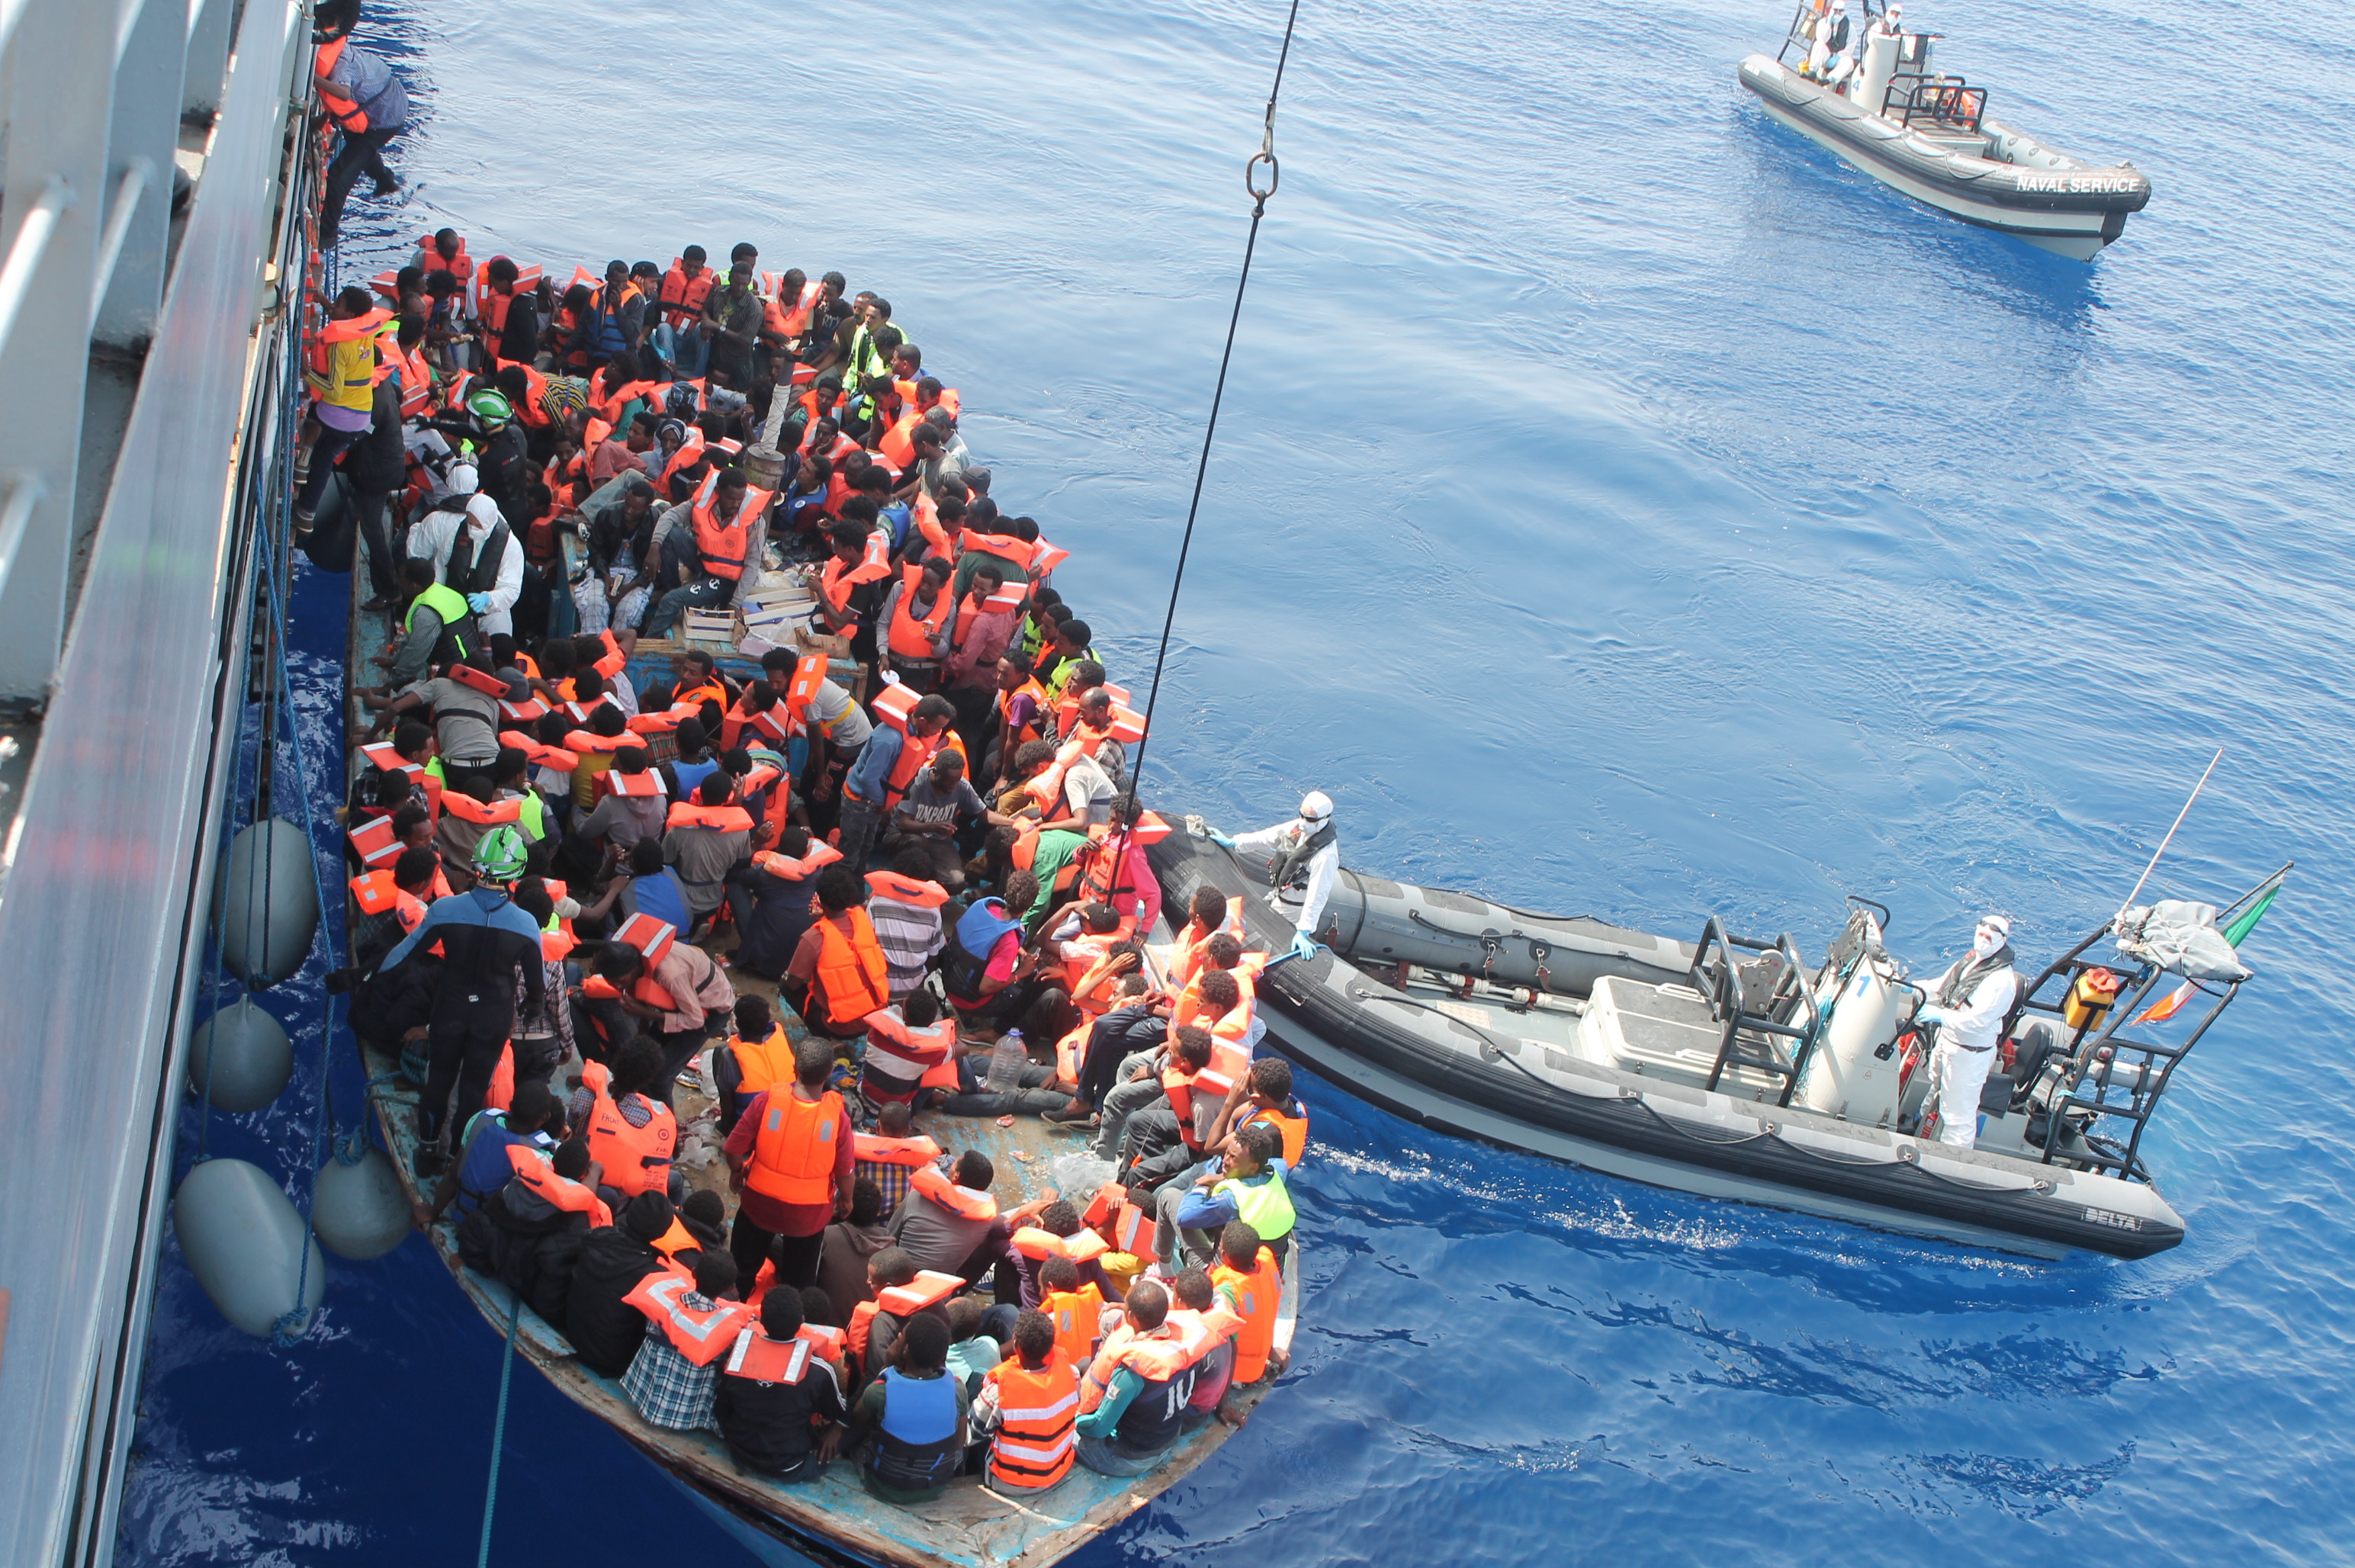 web-refugees-migrants-capsize-irishdefenseforces-cc